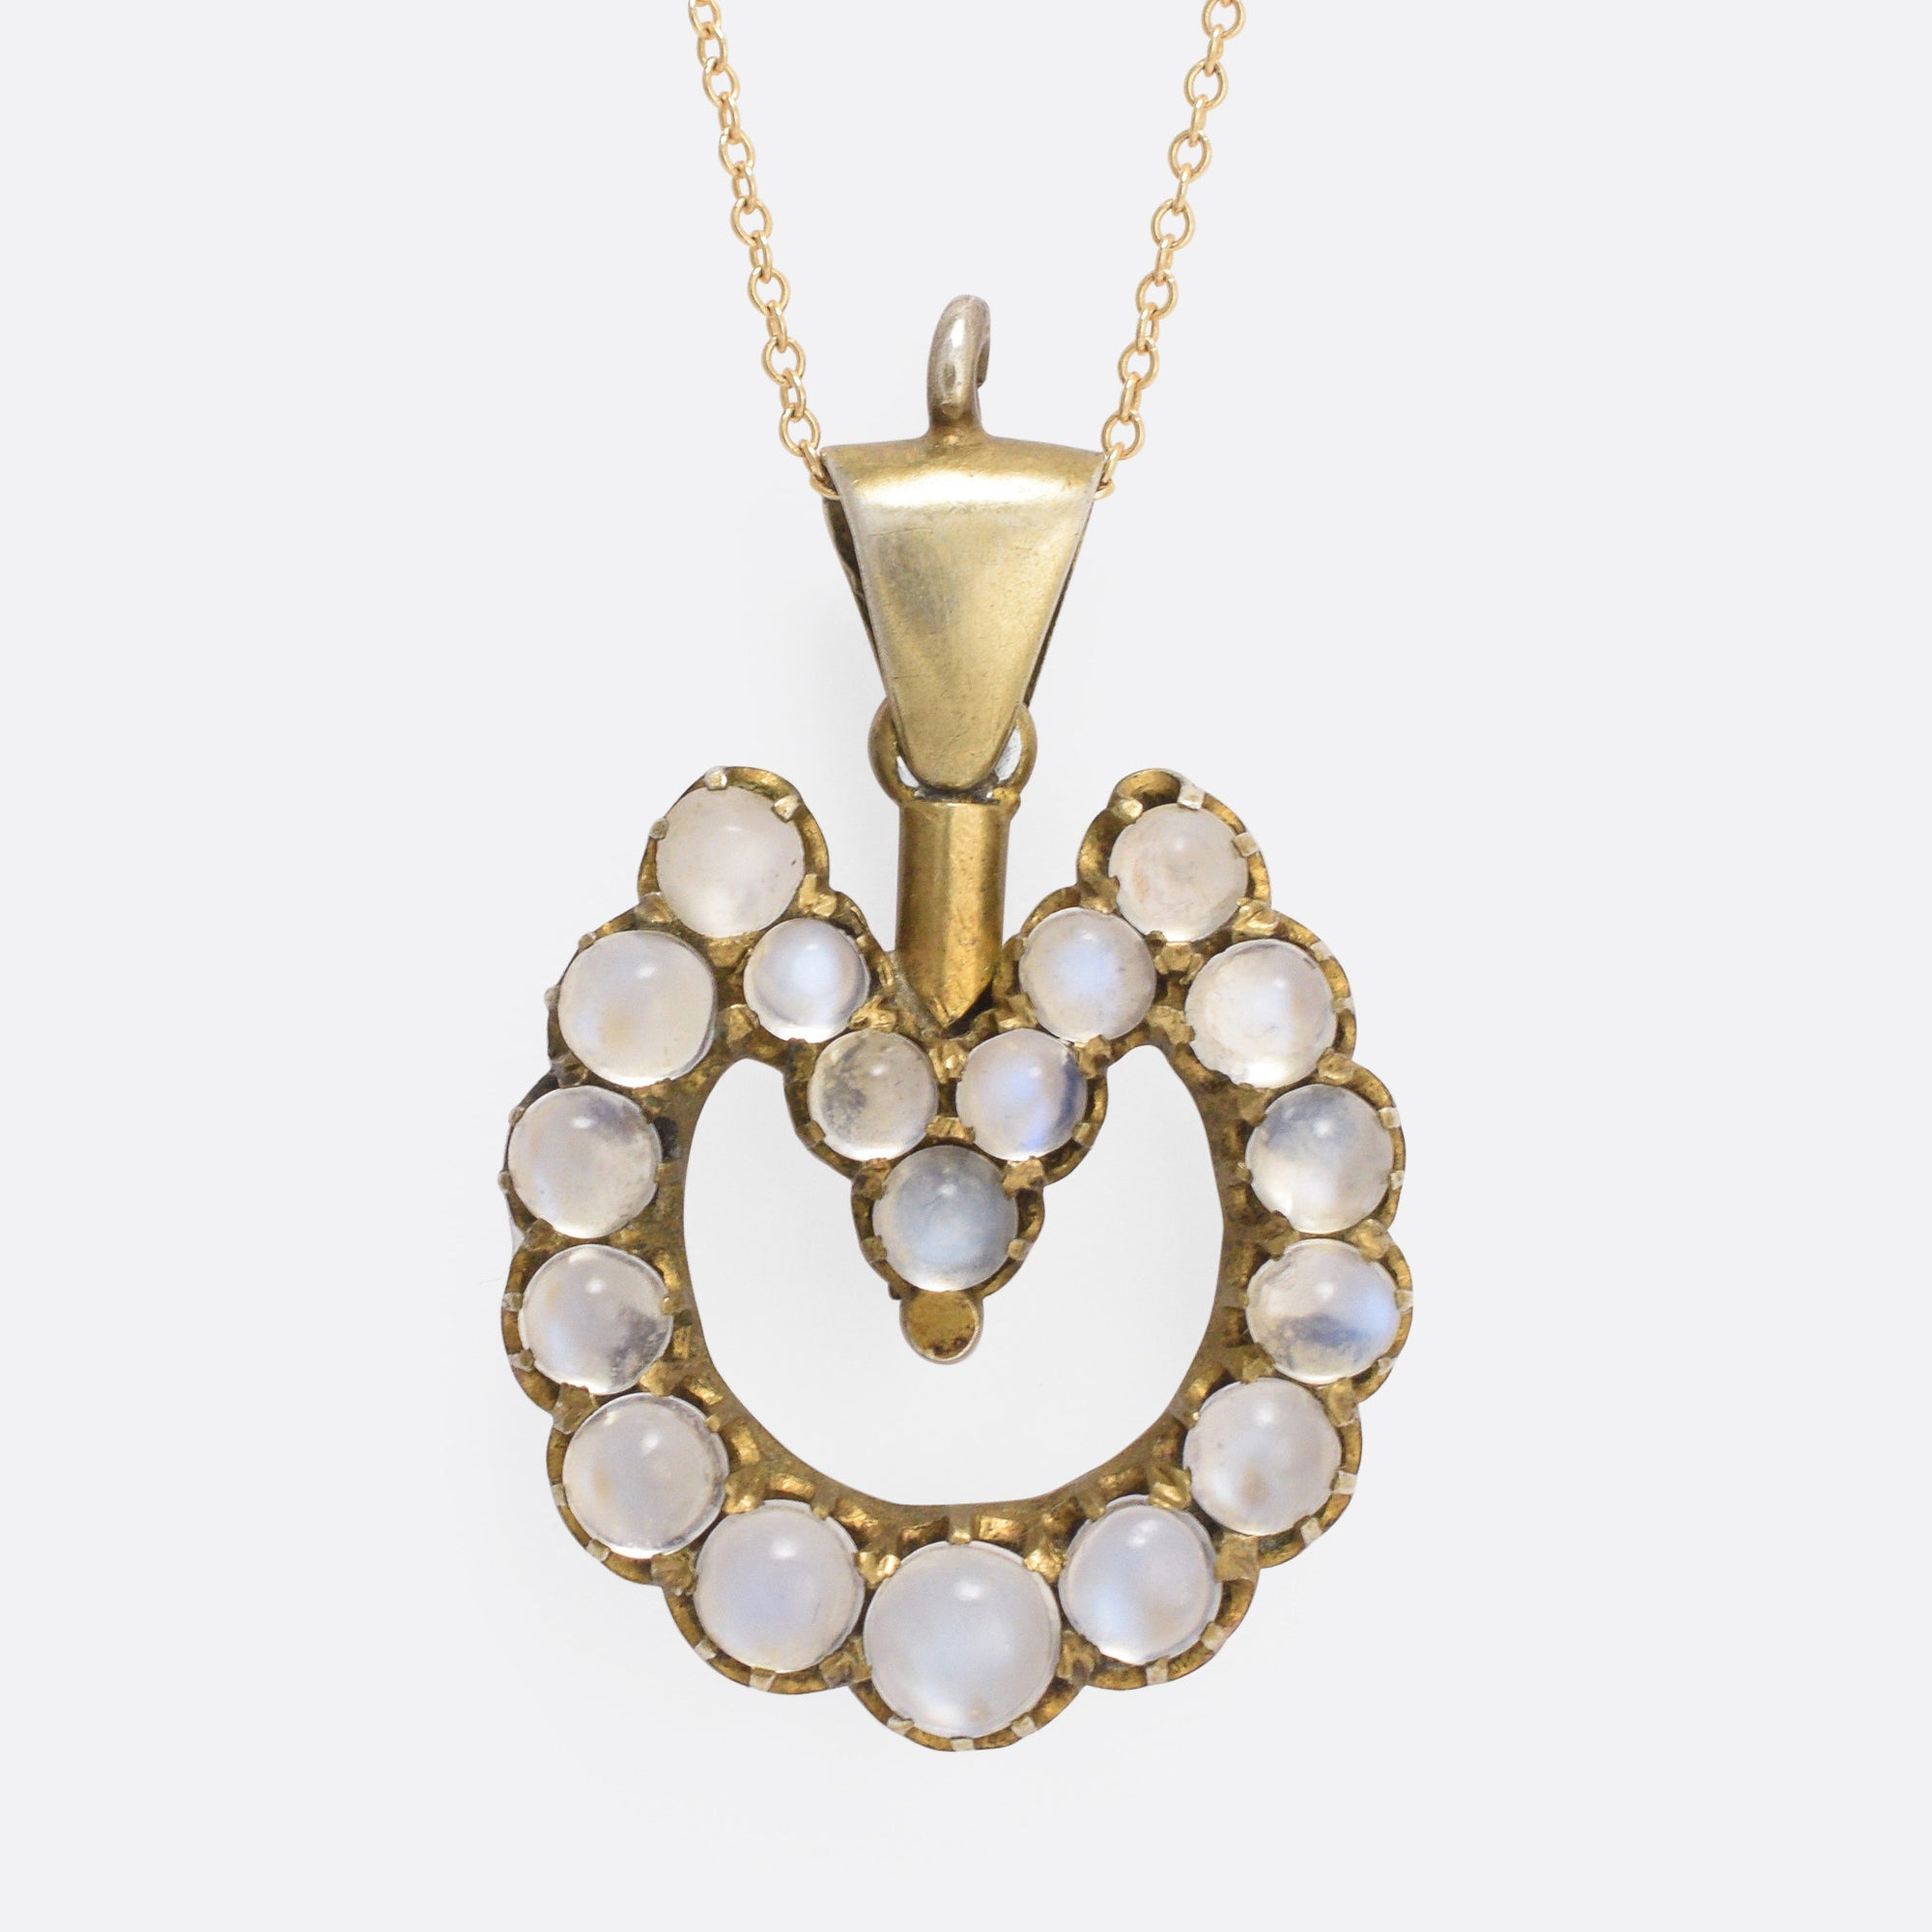 pendantnecklace white diamond necklace roberto pendant gold horseshoe coin